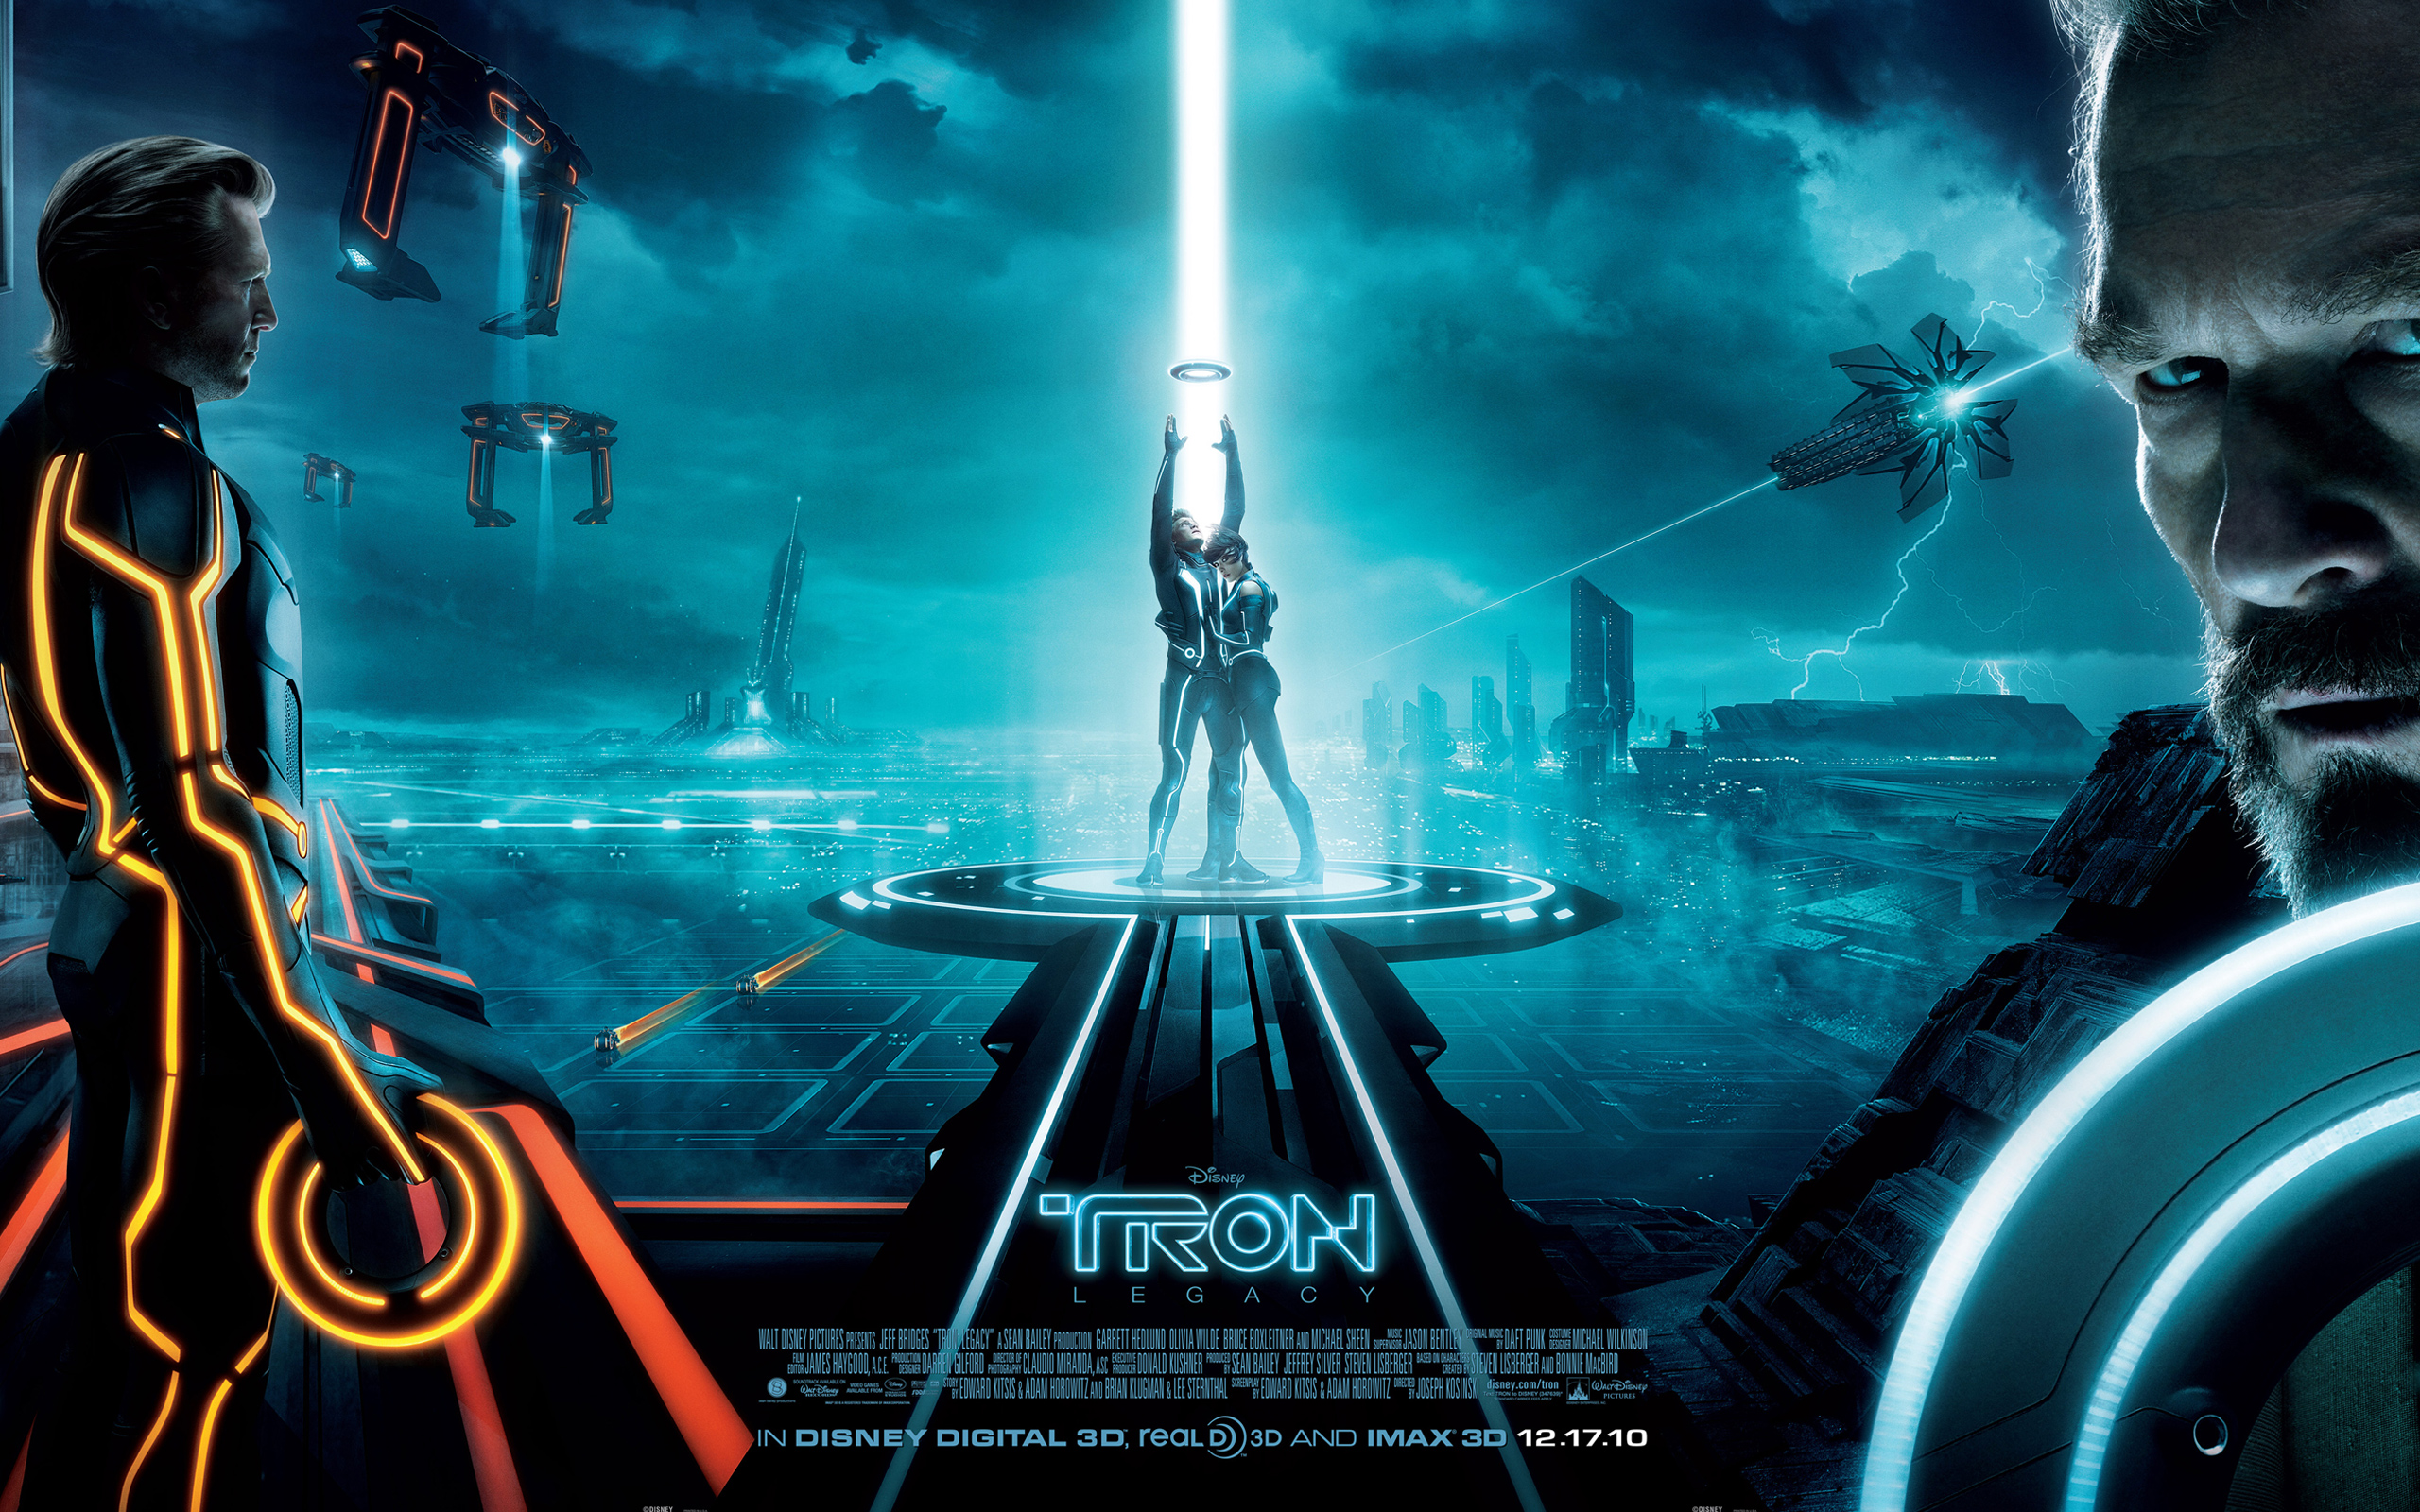 Tron Legacy High Resolution wallpaper